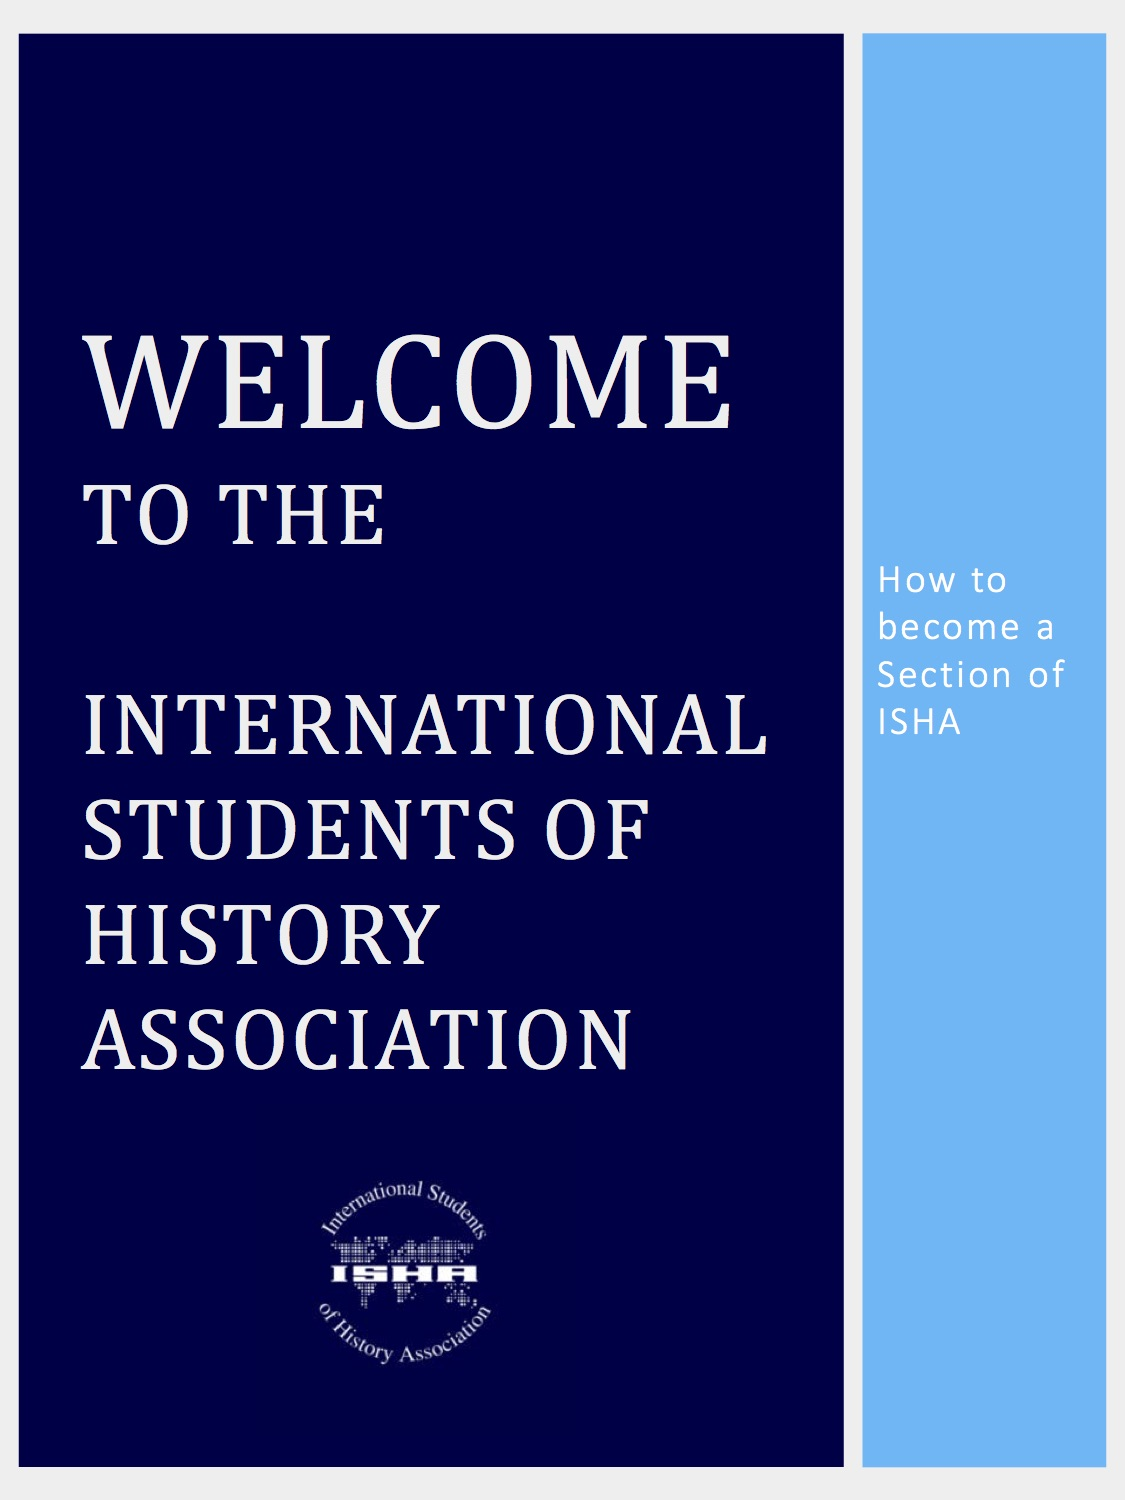 Get active locally – International Students of History